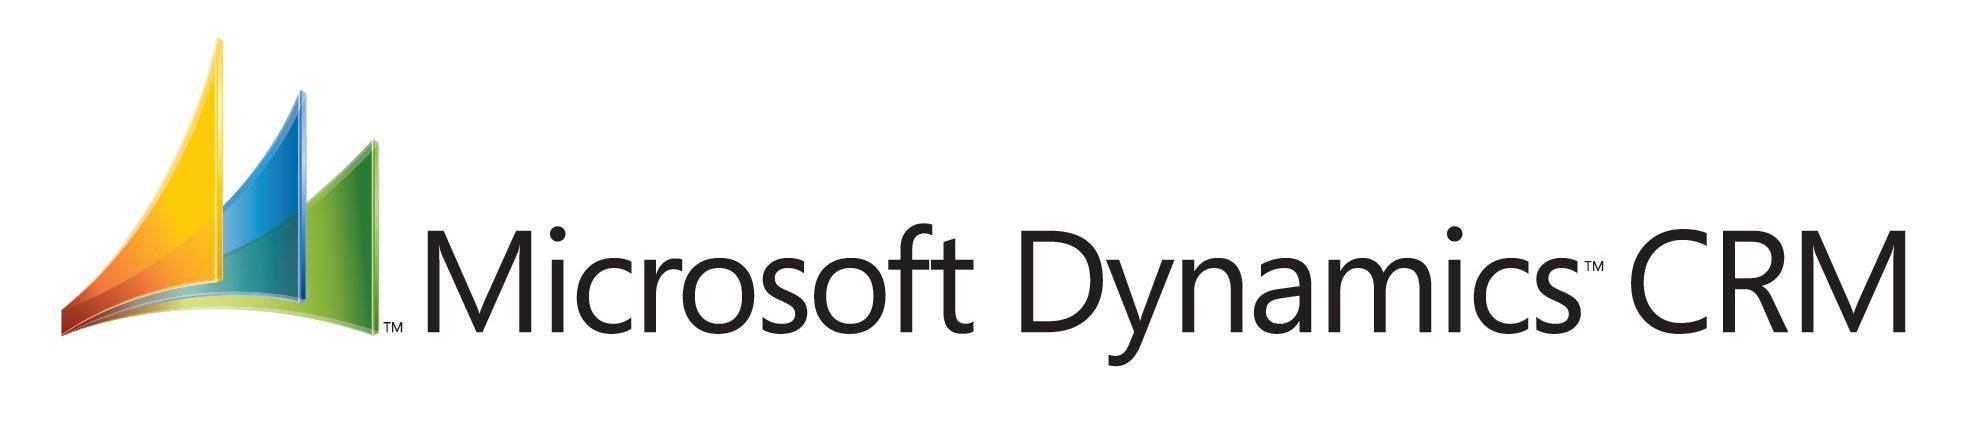 2022274-Microsoft-Dynamics-CRM-Limited-CAL-1license-s-Microsoft-Dynamics-CRM-B